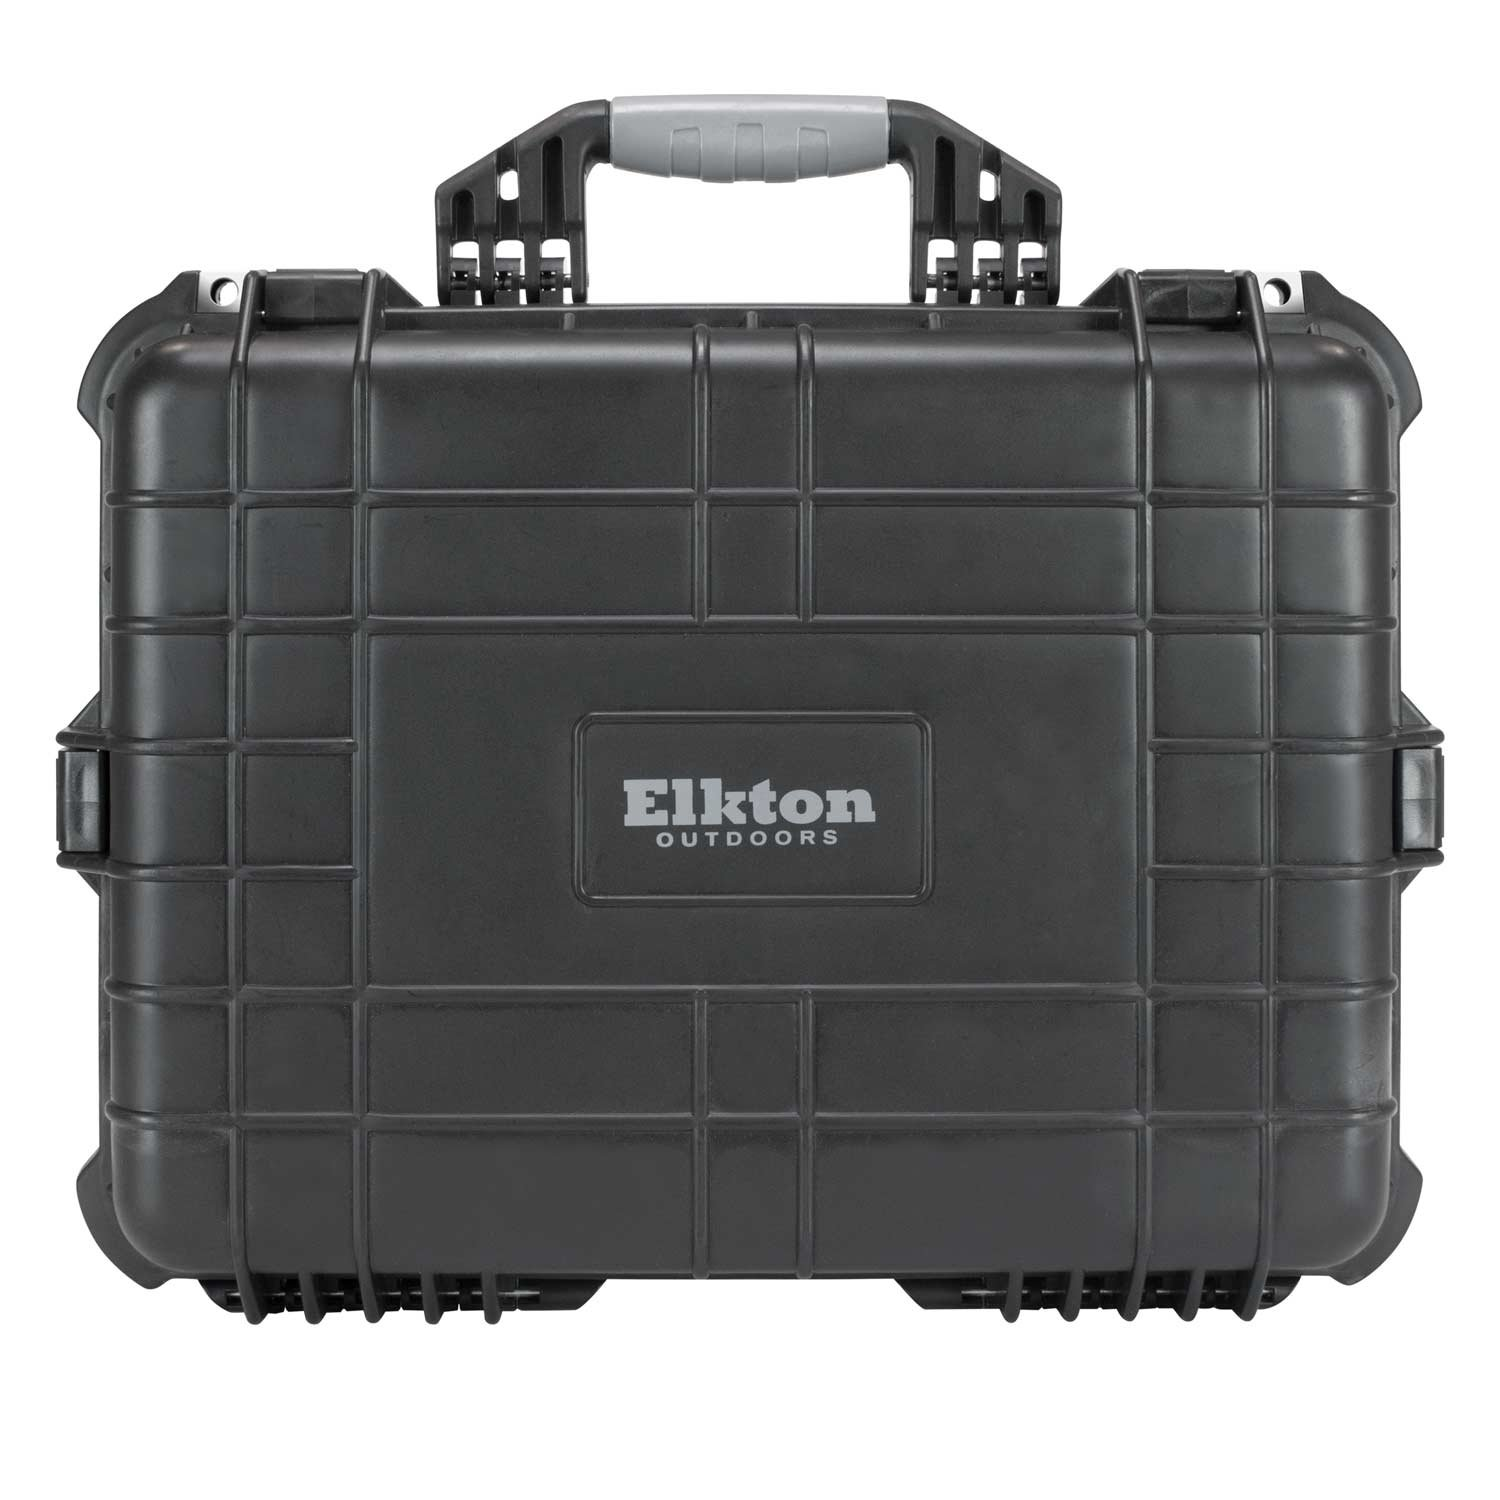 Elkton Outdoors Hard Gun Case: Fully Customizable Pistol Case: Holds 5 Handguns and 10 Magazines: Crush Resistant & Waterproof! by Elkton Outdoors (Image #5)